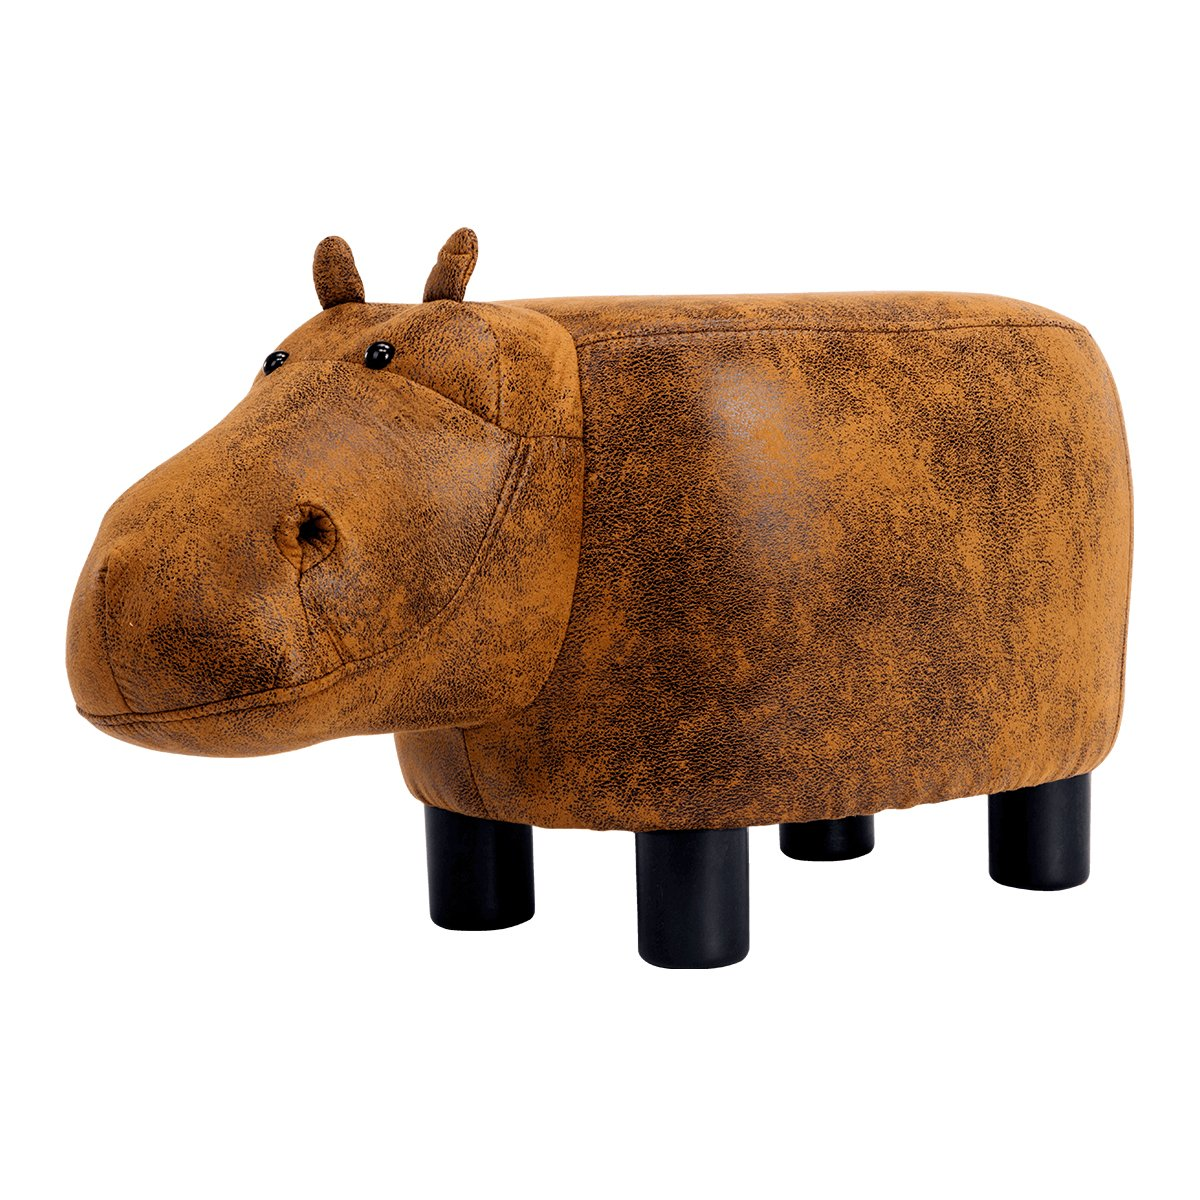 Guteen Upholstered Ride-on Toy Seat Ottoman Footrest Stool with Vivid Adorable Animal-Like Features(Brown Hippo)